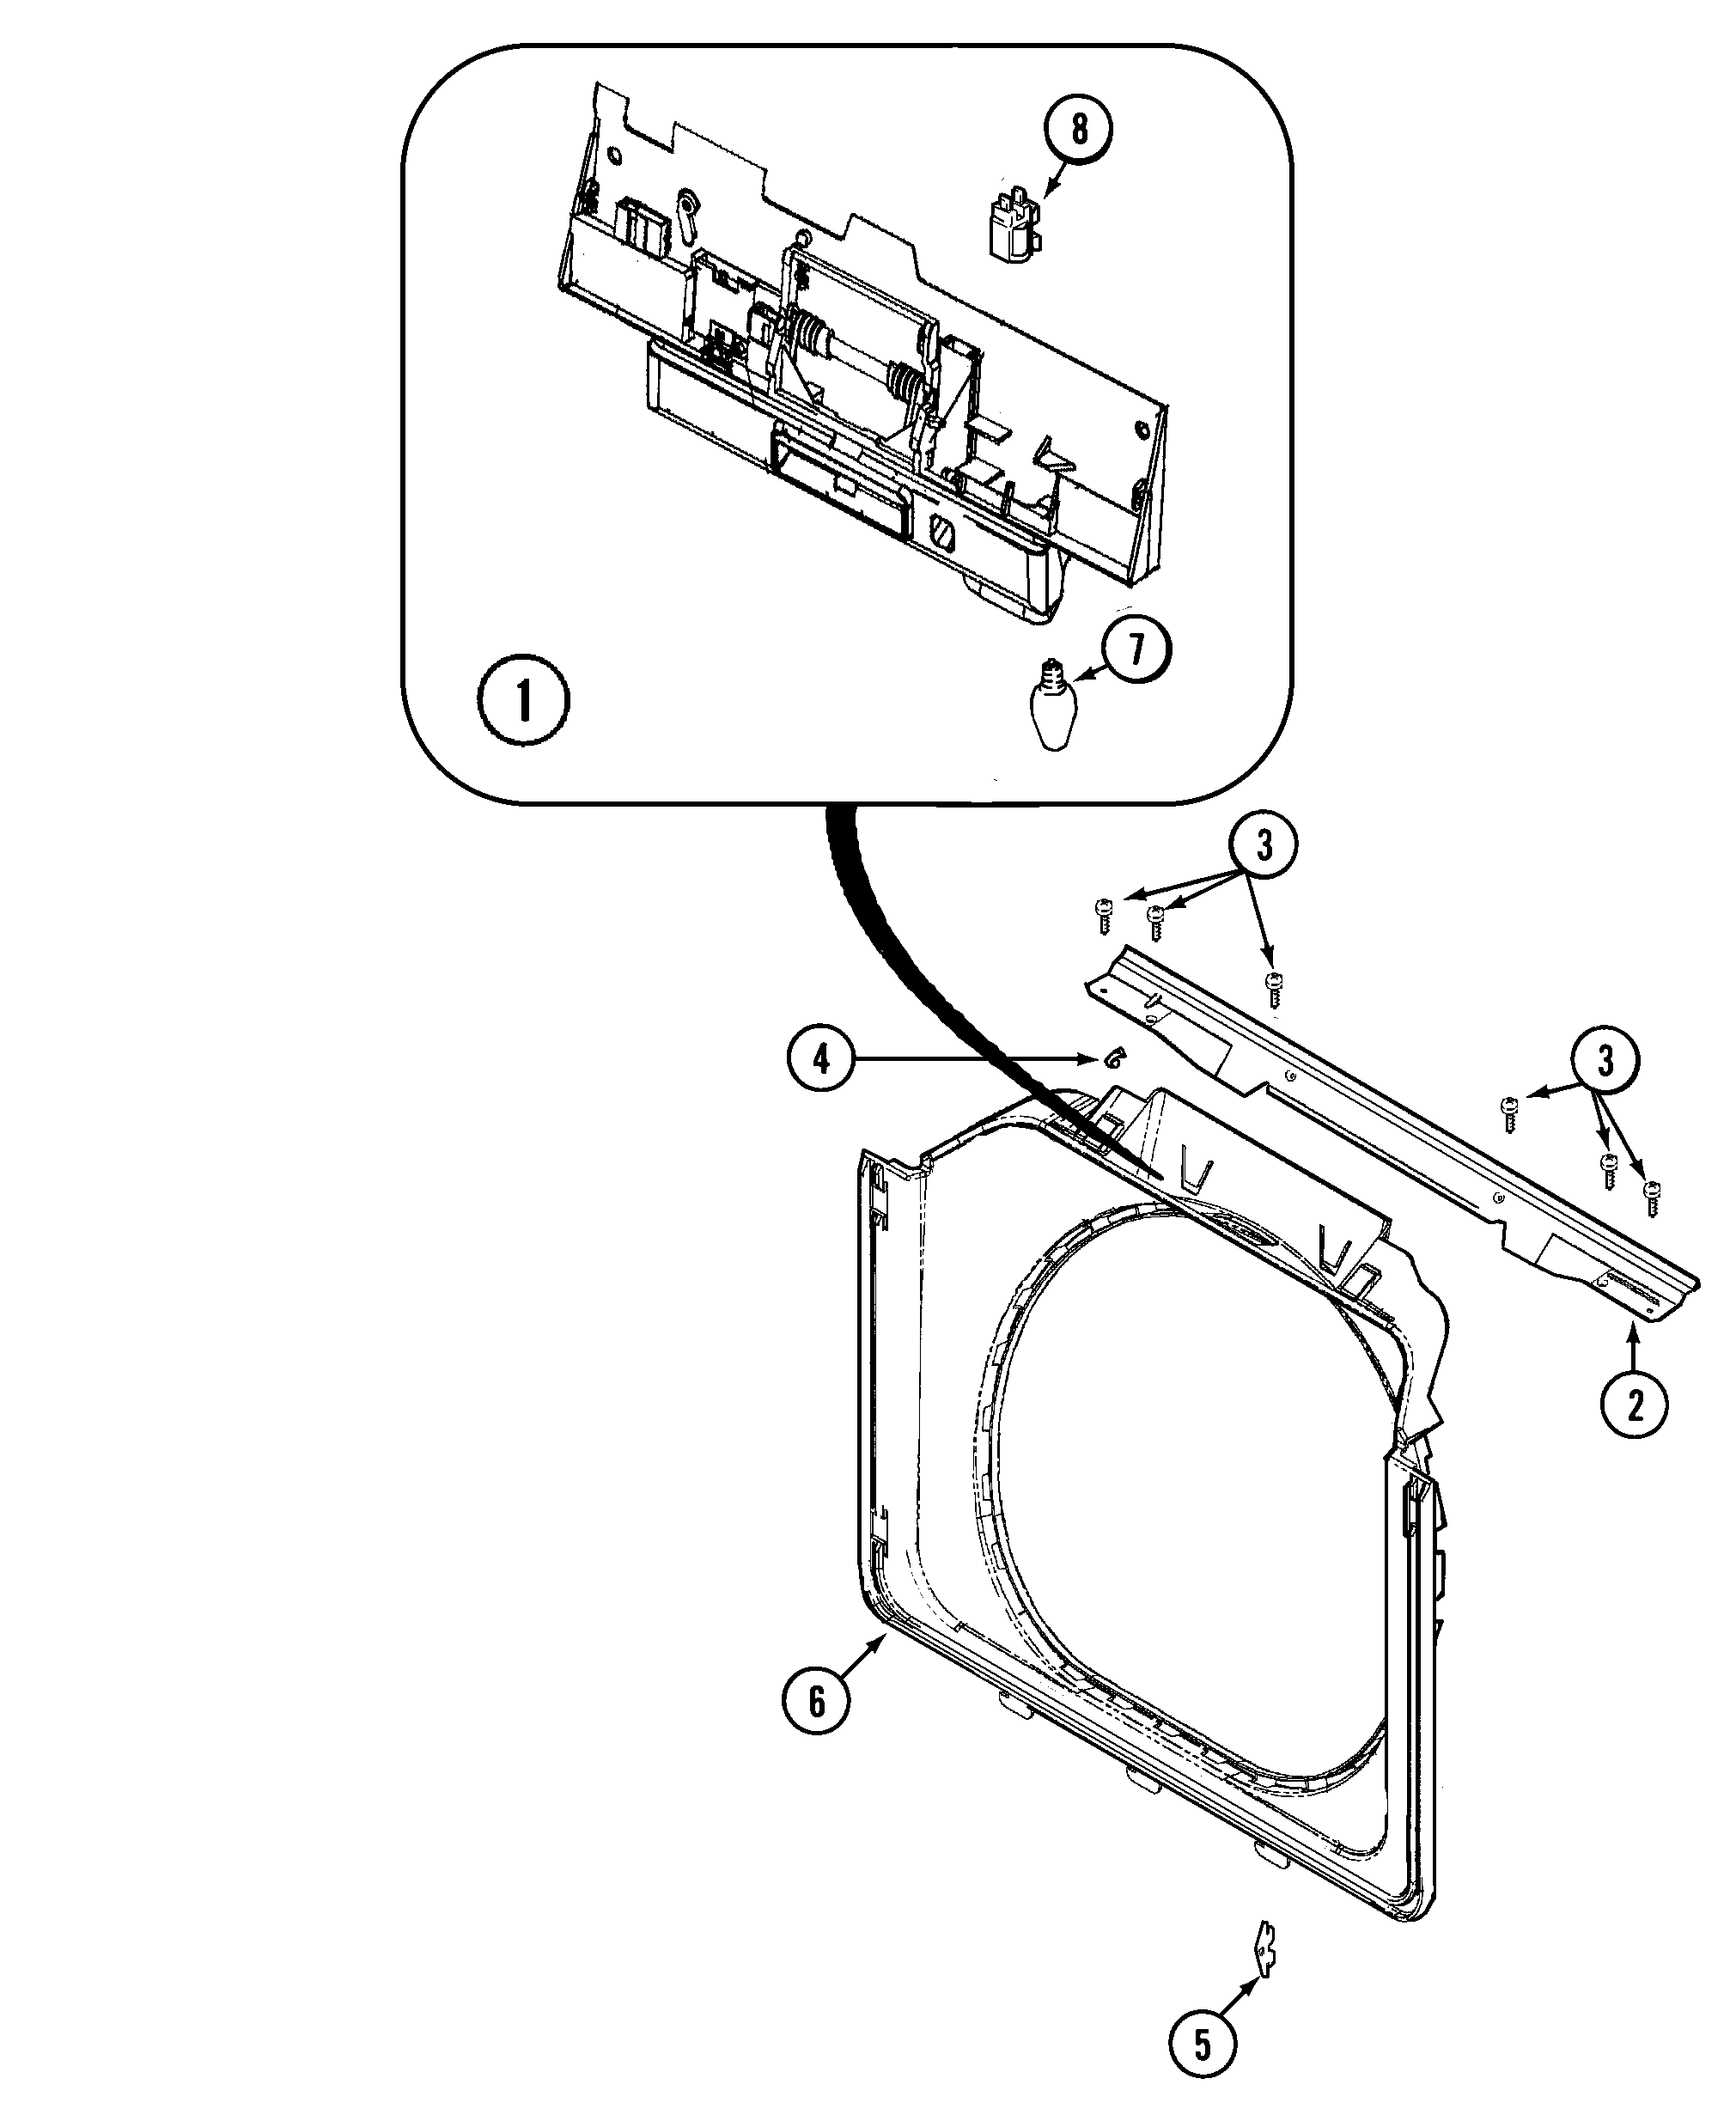 DOOR SHROUD & DOOR LATCH ASSEMBLY Diagram & Parts List for